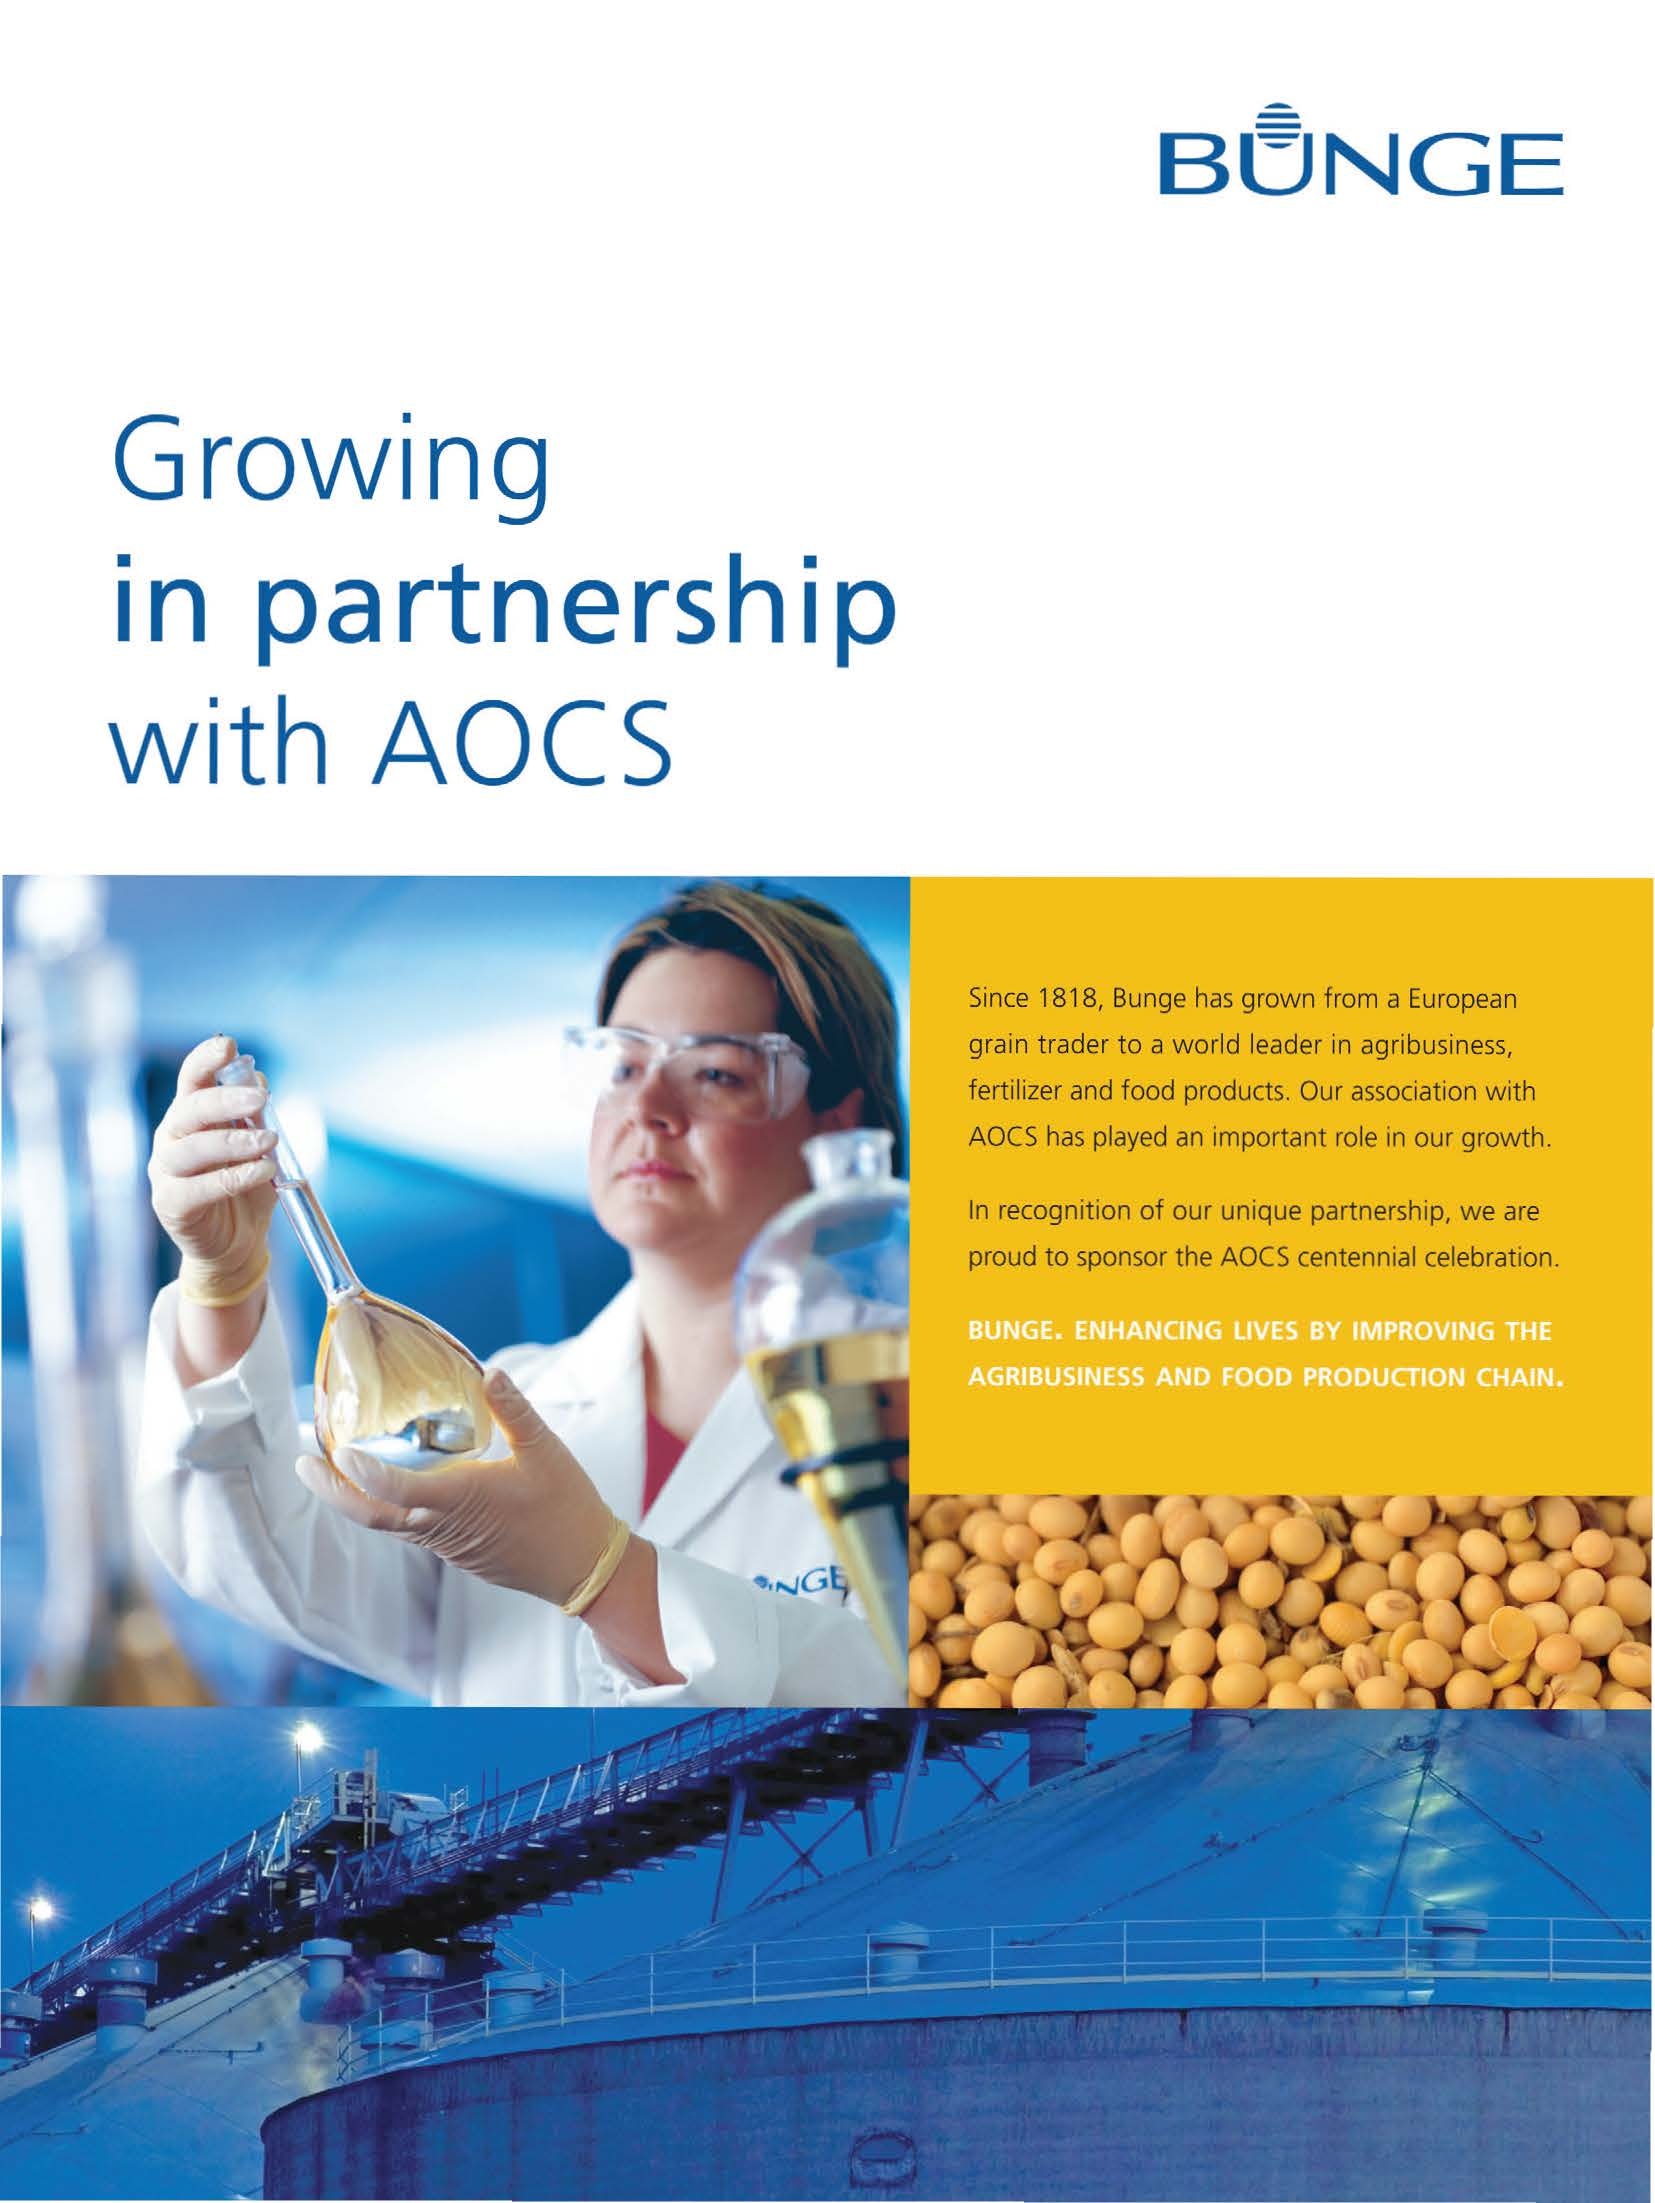 - BLJNGE Growing 1n partnership with AOCS Since 1818, Bunge has grown from a European grain trader to a world leader in agribusiness, fertilizer and food products.